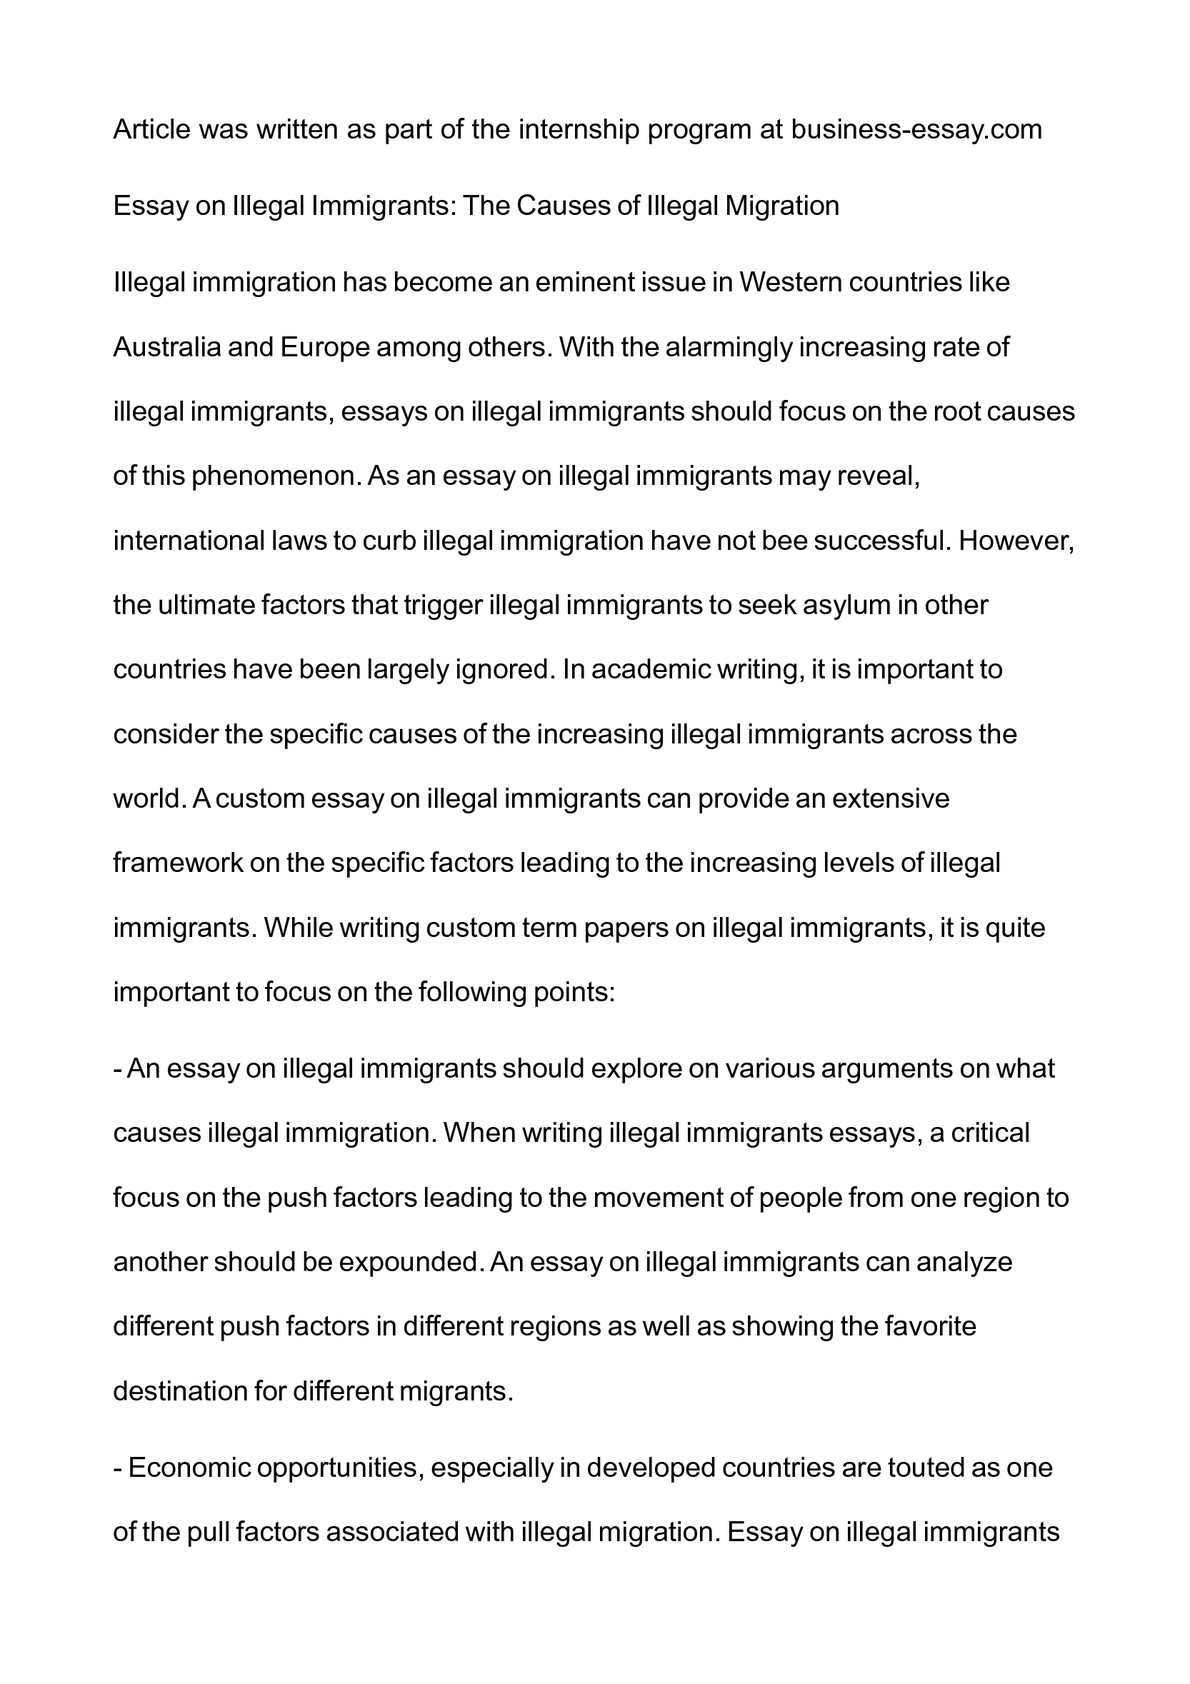 illegal immigration essay calamatilde131acirccopyo essay on illegal immigrants the causes of illegal migration